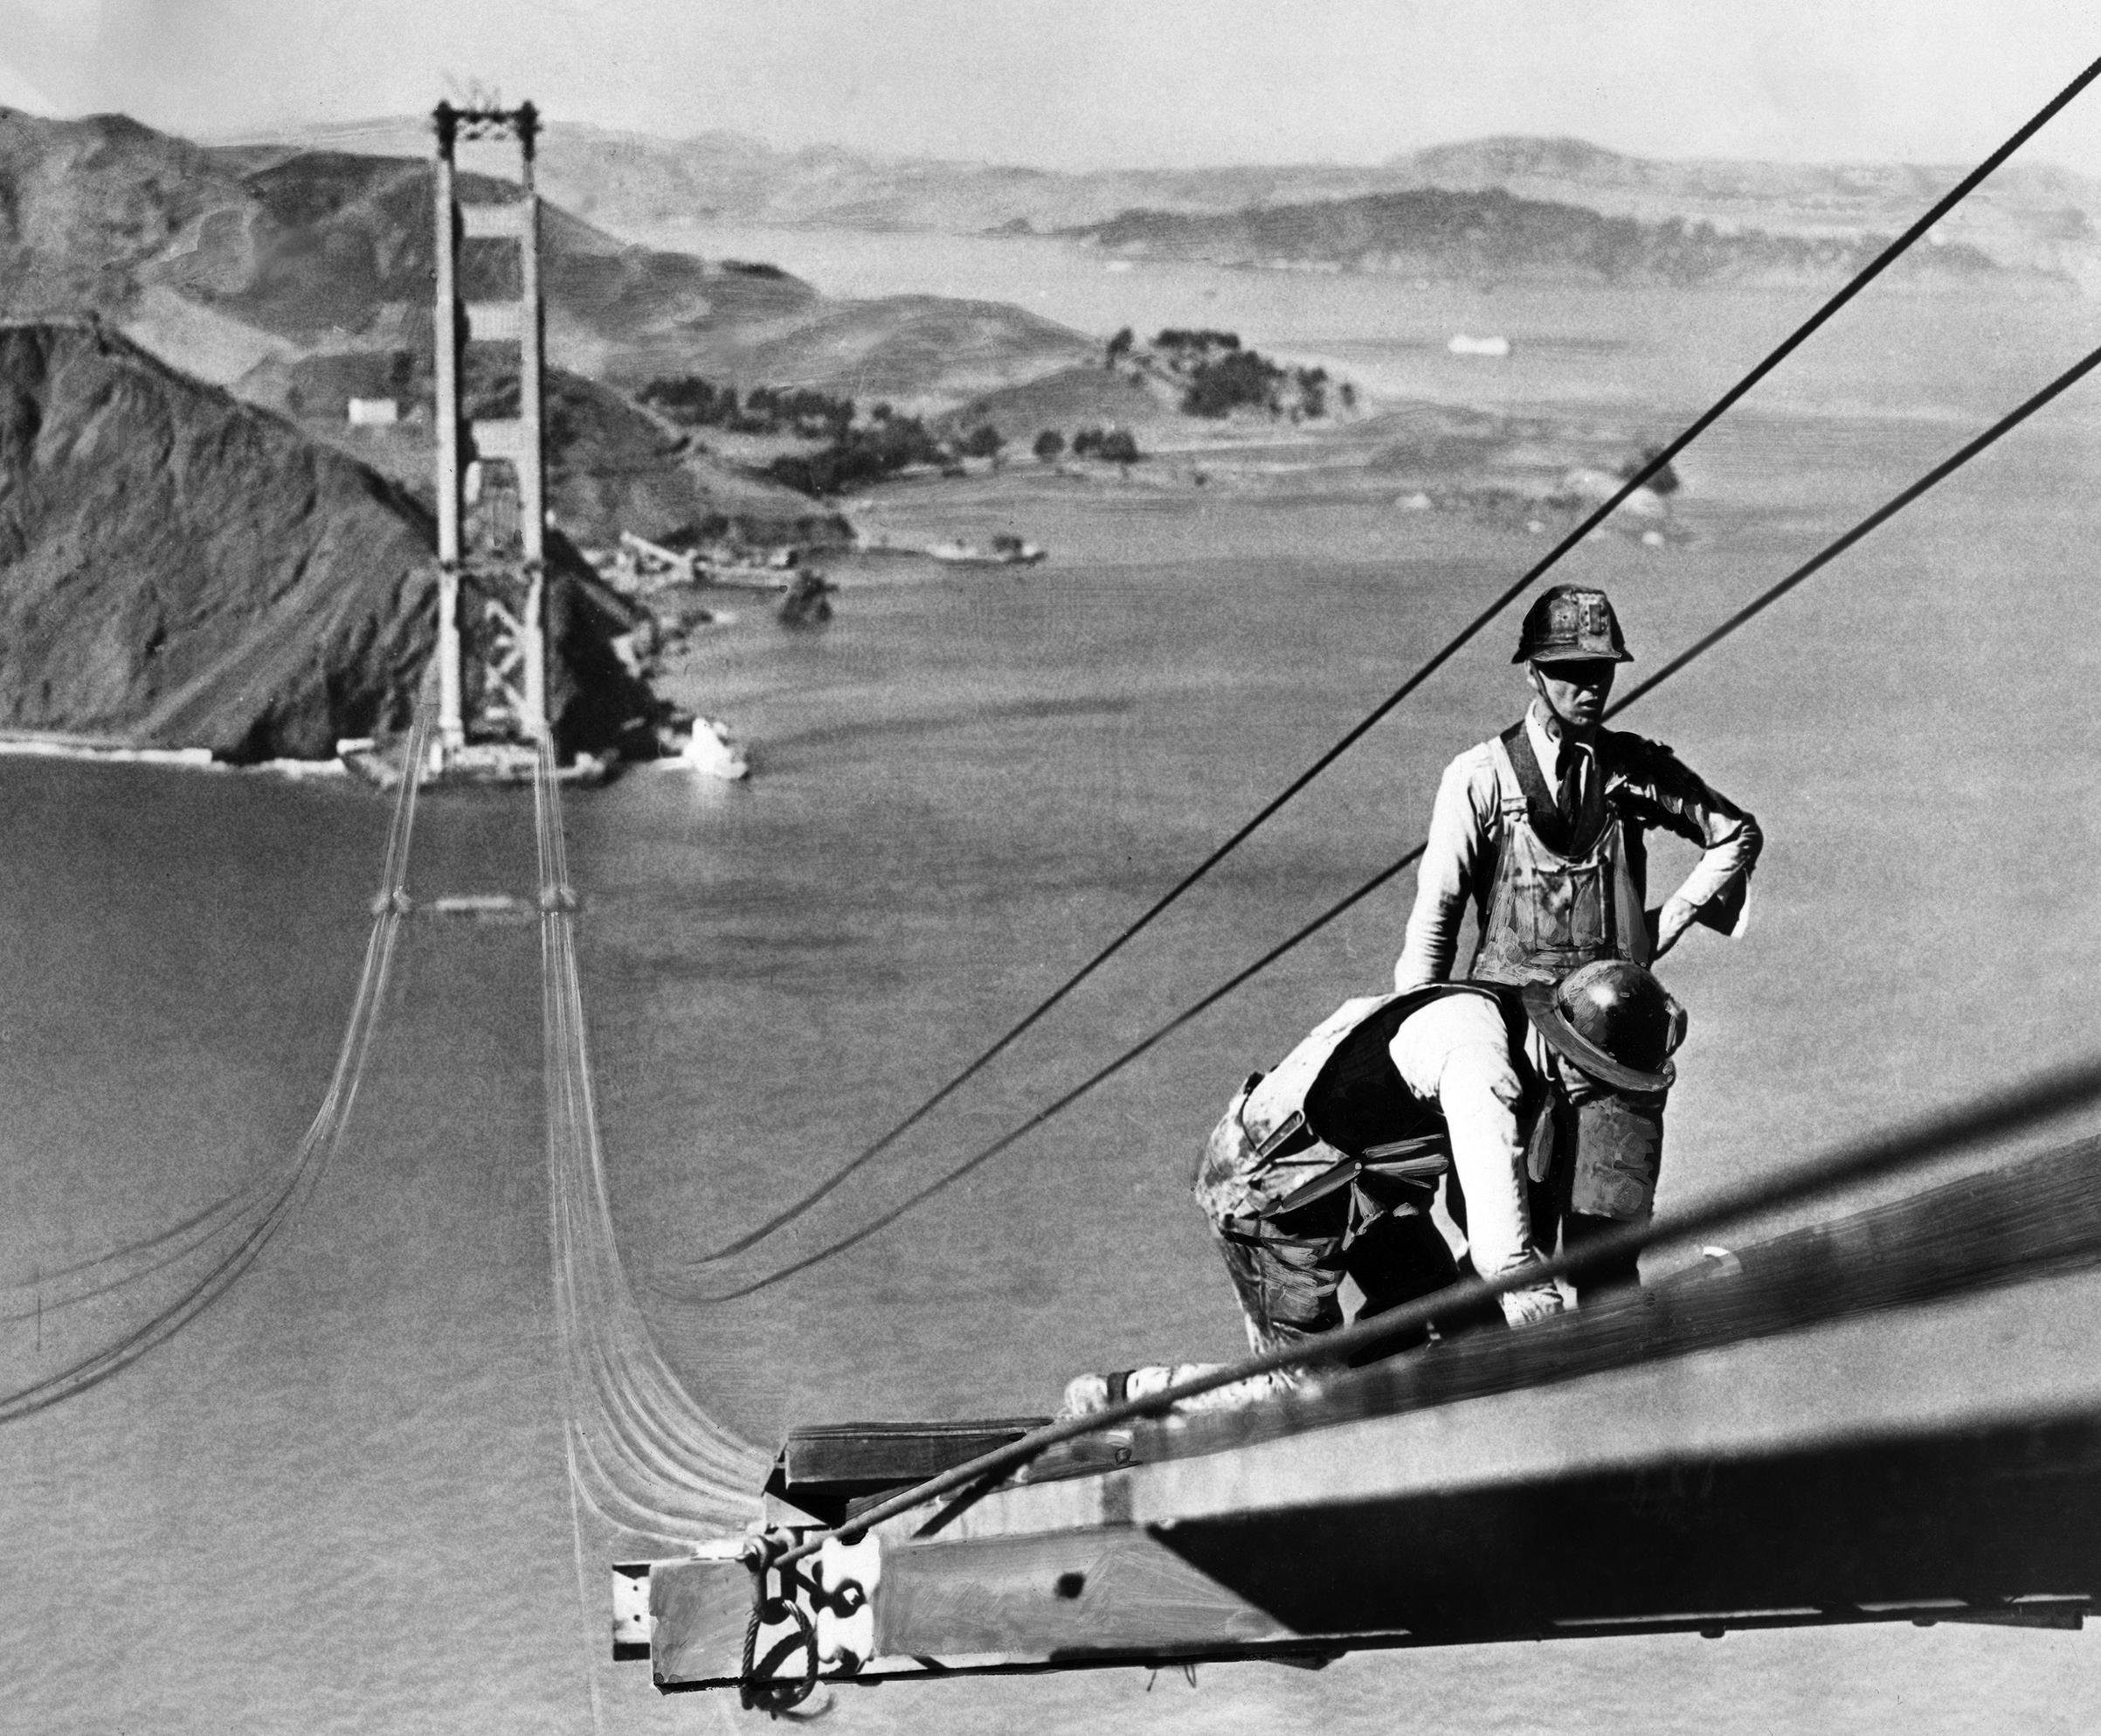 Golden Gate bridge, in the San Francisco Bay during its construction, Oct. 1935.